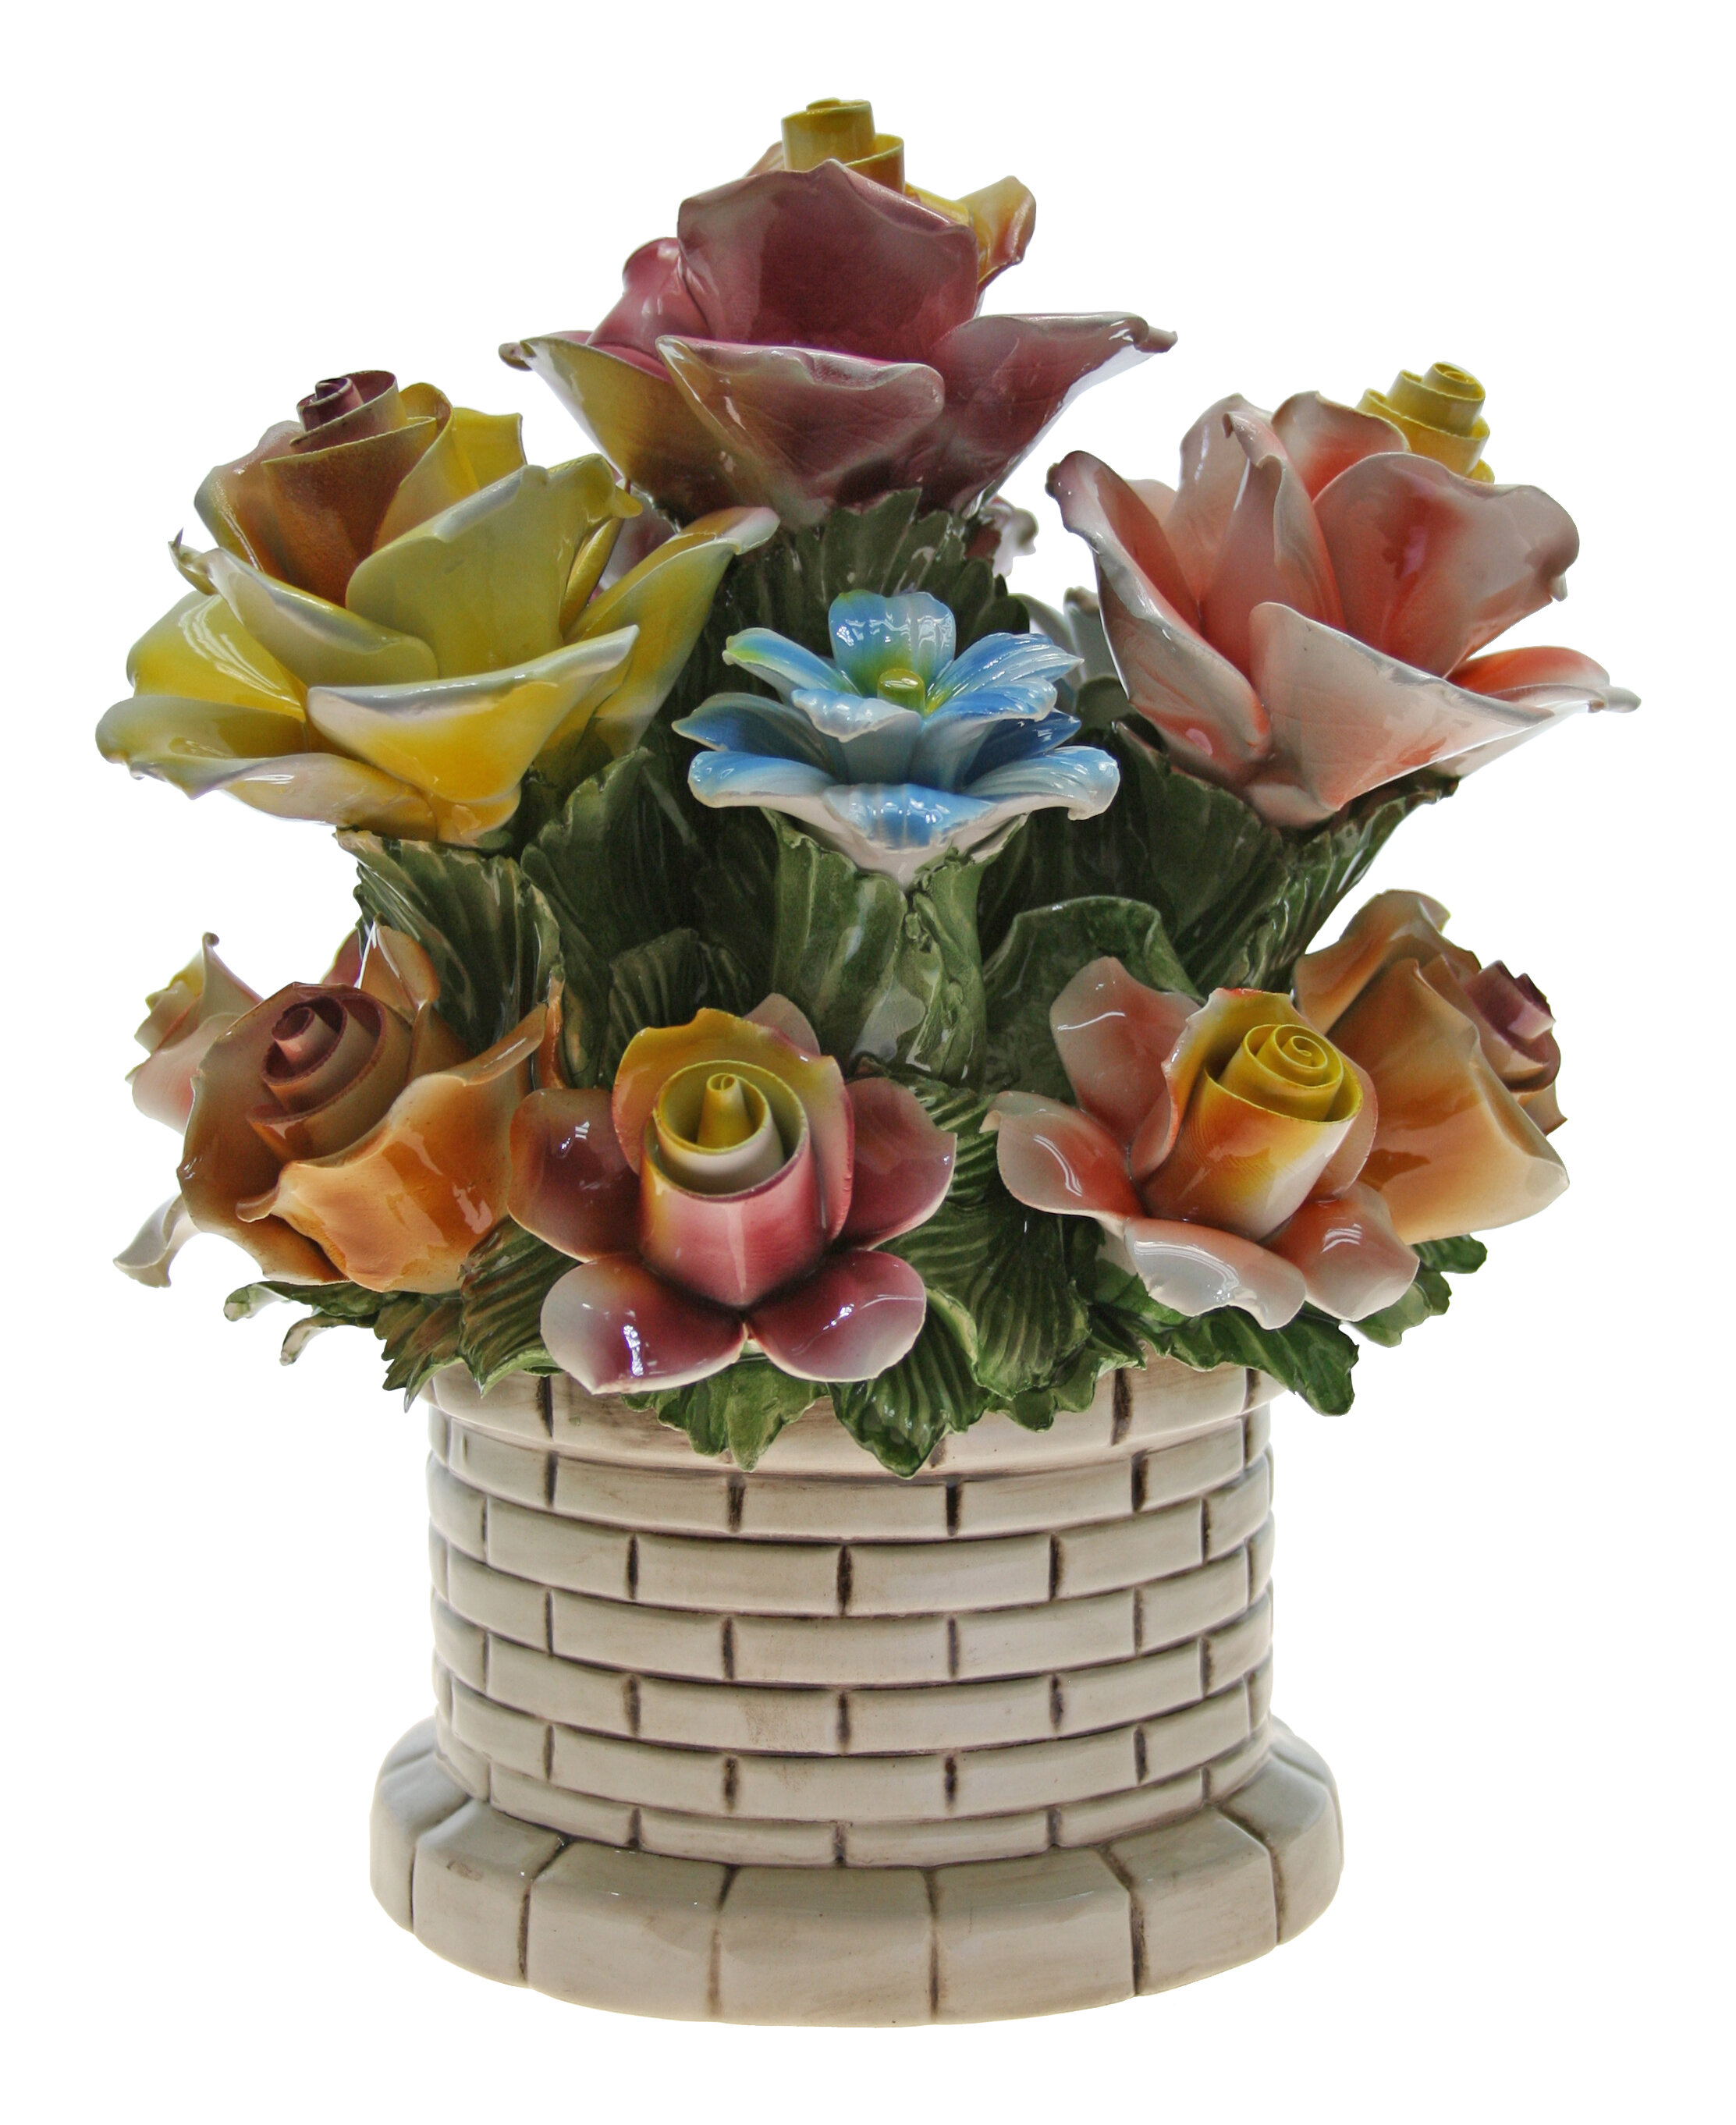 August Grove Round Brick Flower Bouquet In Pot Wayfair